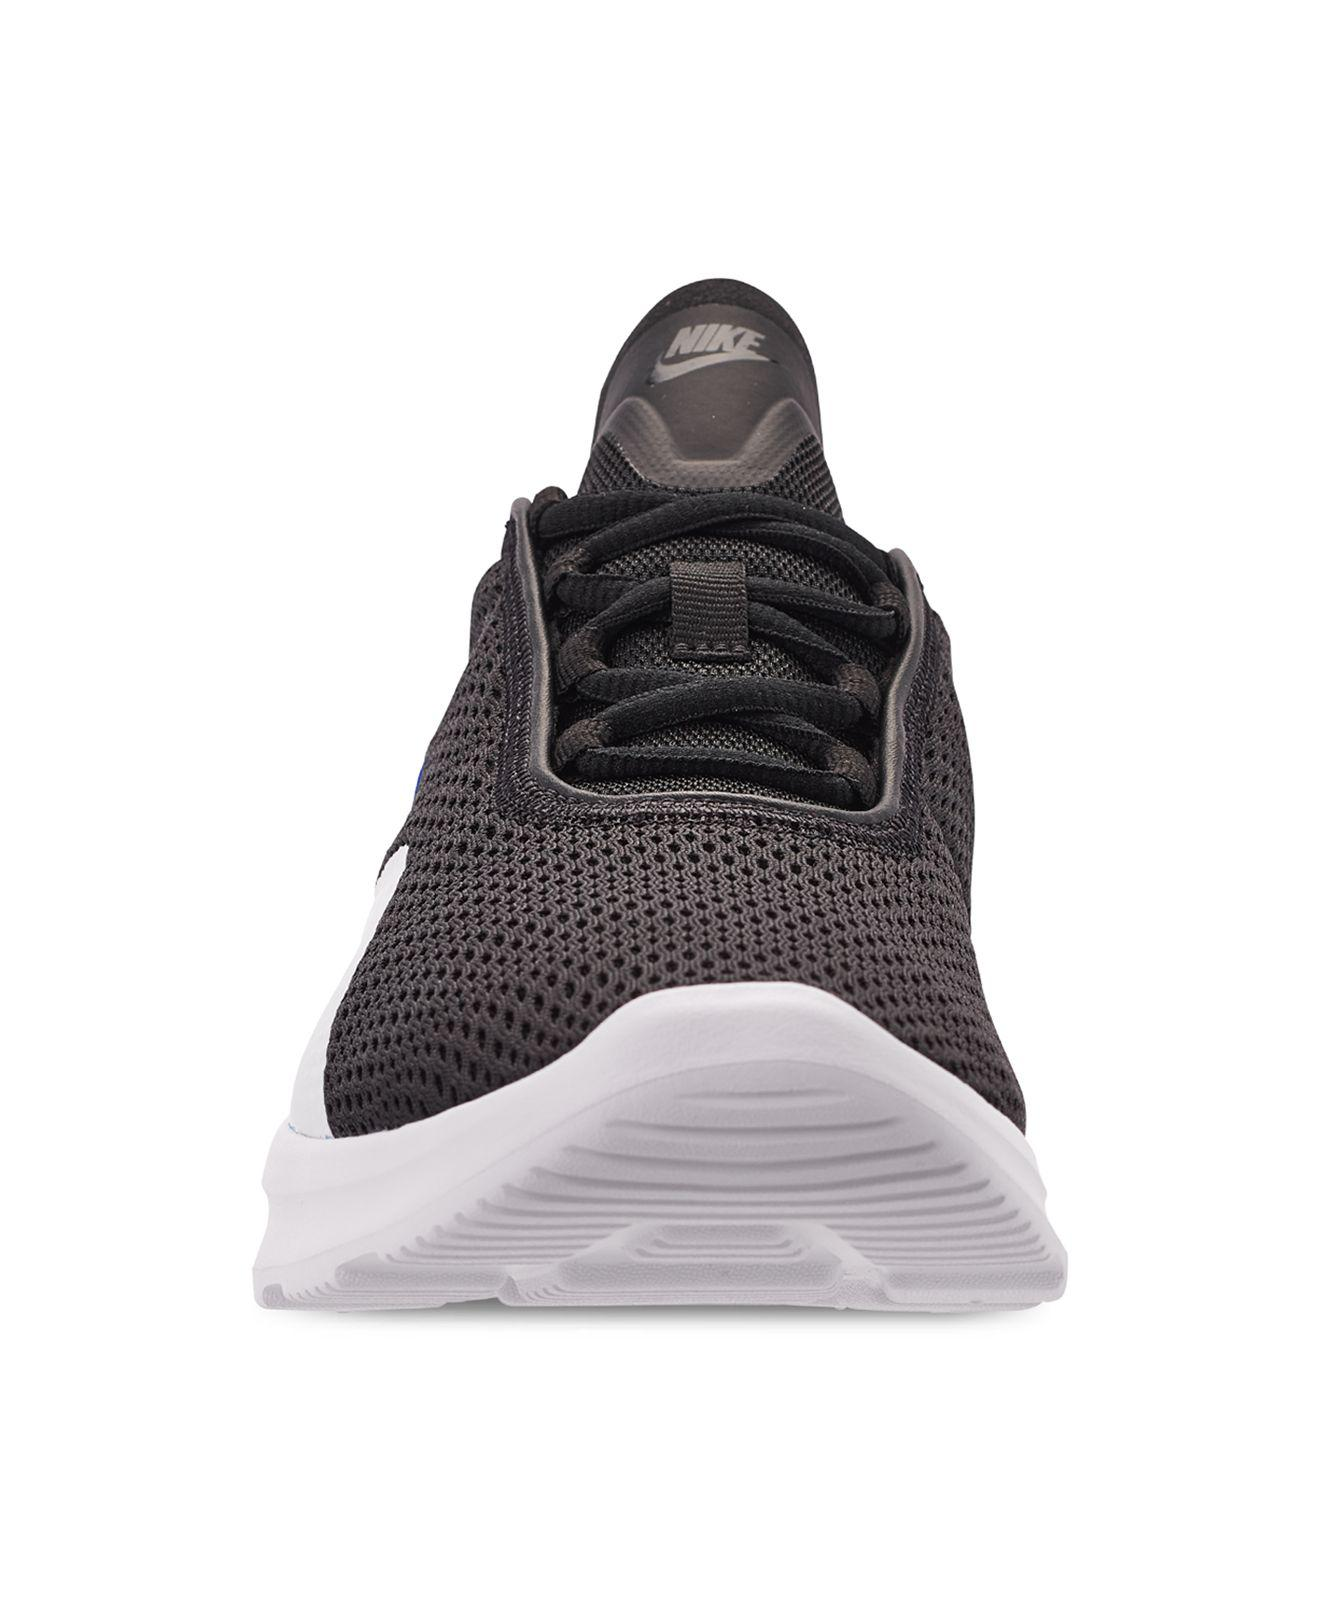 897b6f5dbd28 Nike - Black Air Max Motion 2 Casual Sneakers From Finish Line for Men -  Lyst. View fullscreen